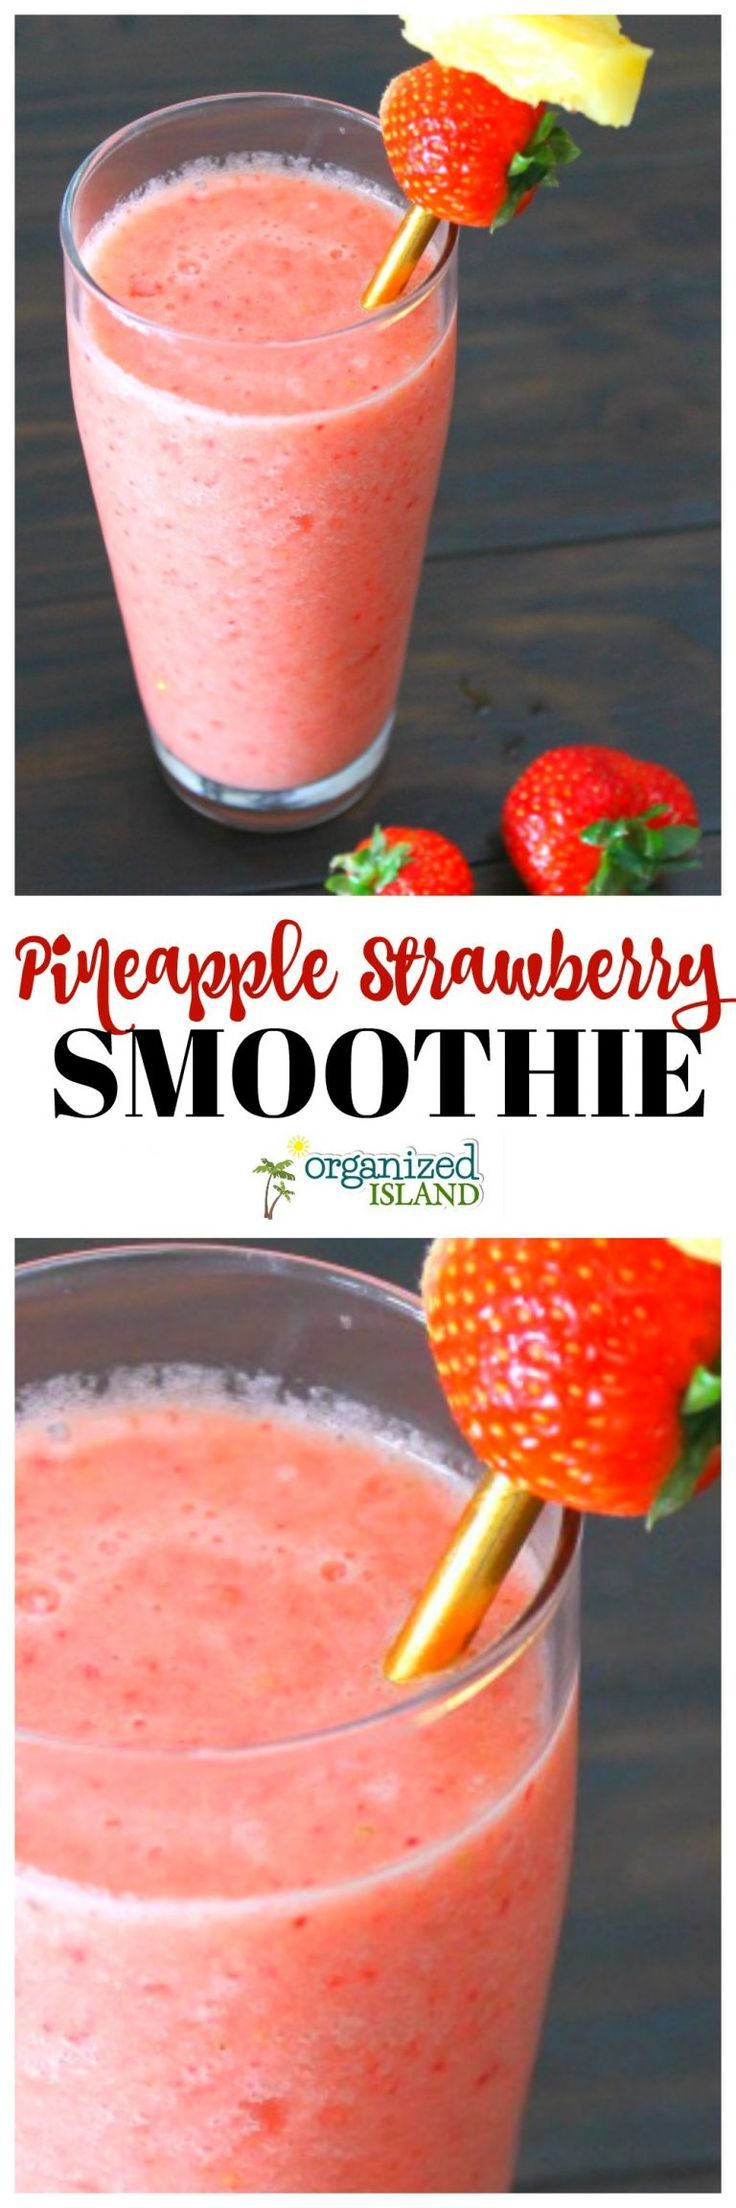 how to make a smoothie without milk or orange juice